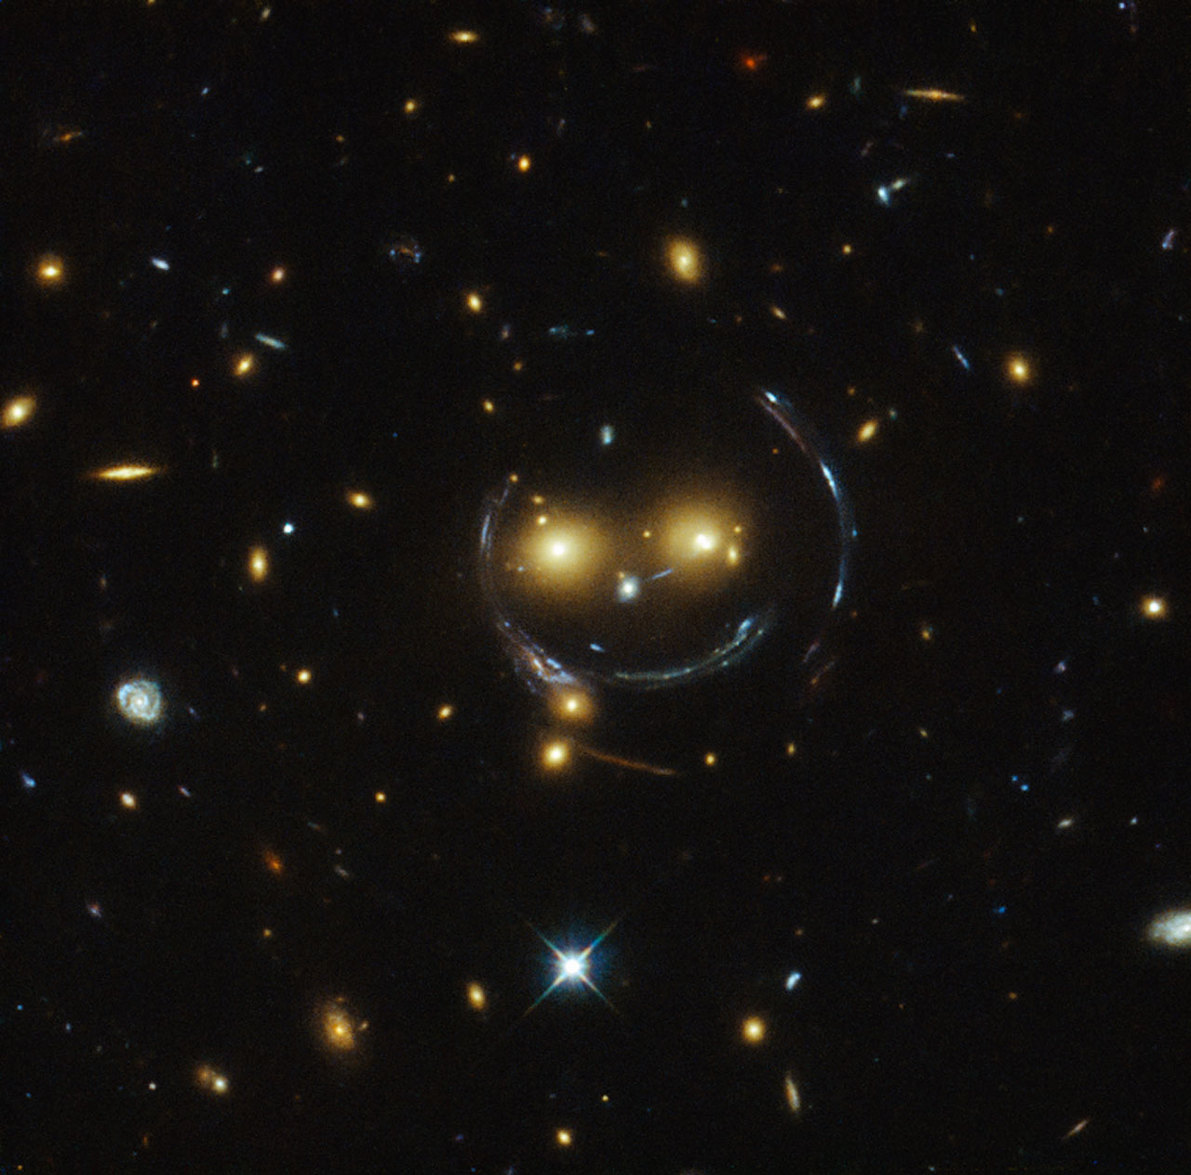 A spectacular smiling gravitational lens, observed by the Hubble Space Telescope. - Image Credit: NASA/ESA